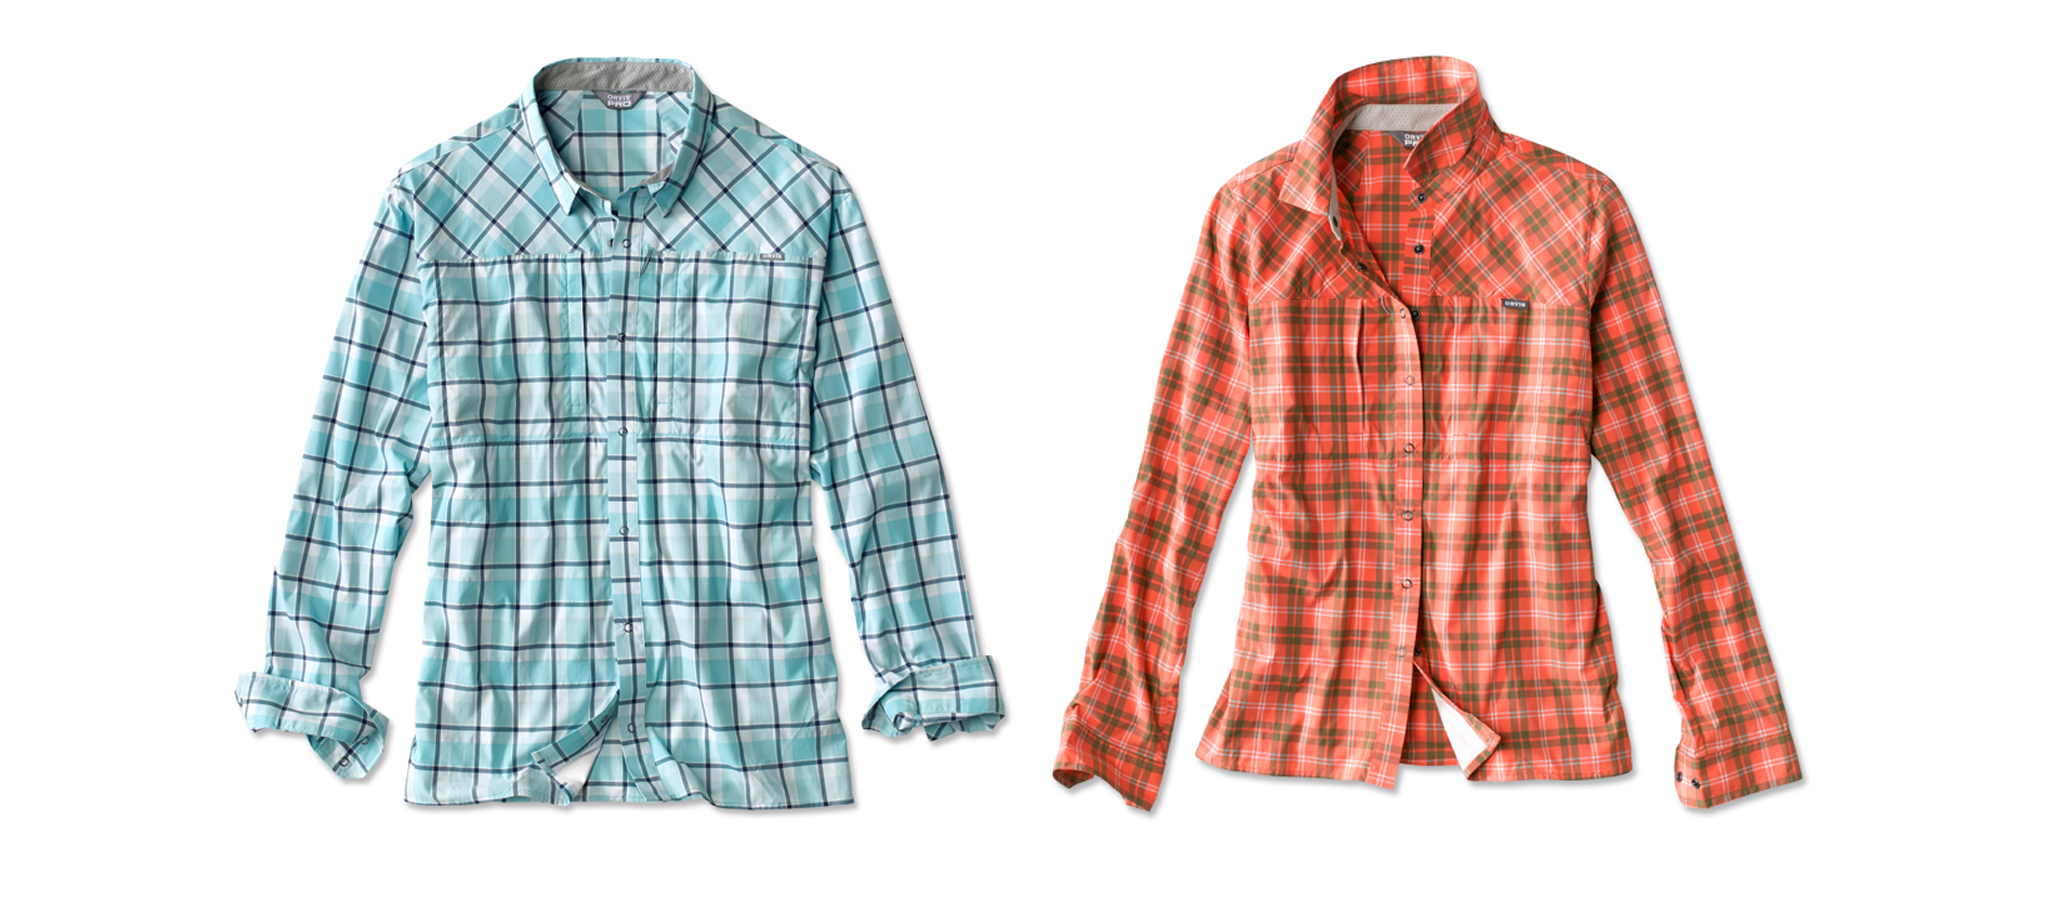 ORVIS-Pro-Stretch-Long-Sleeved-Shirt